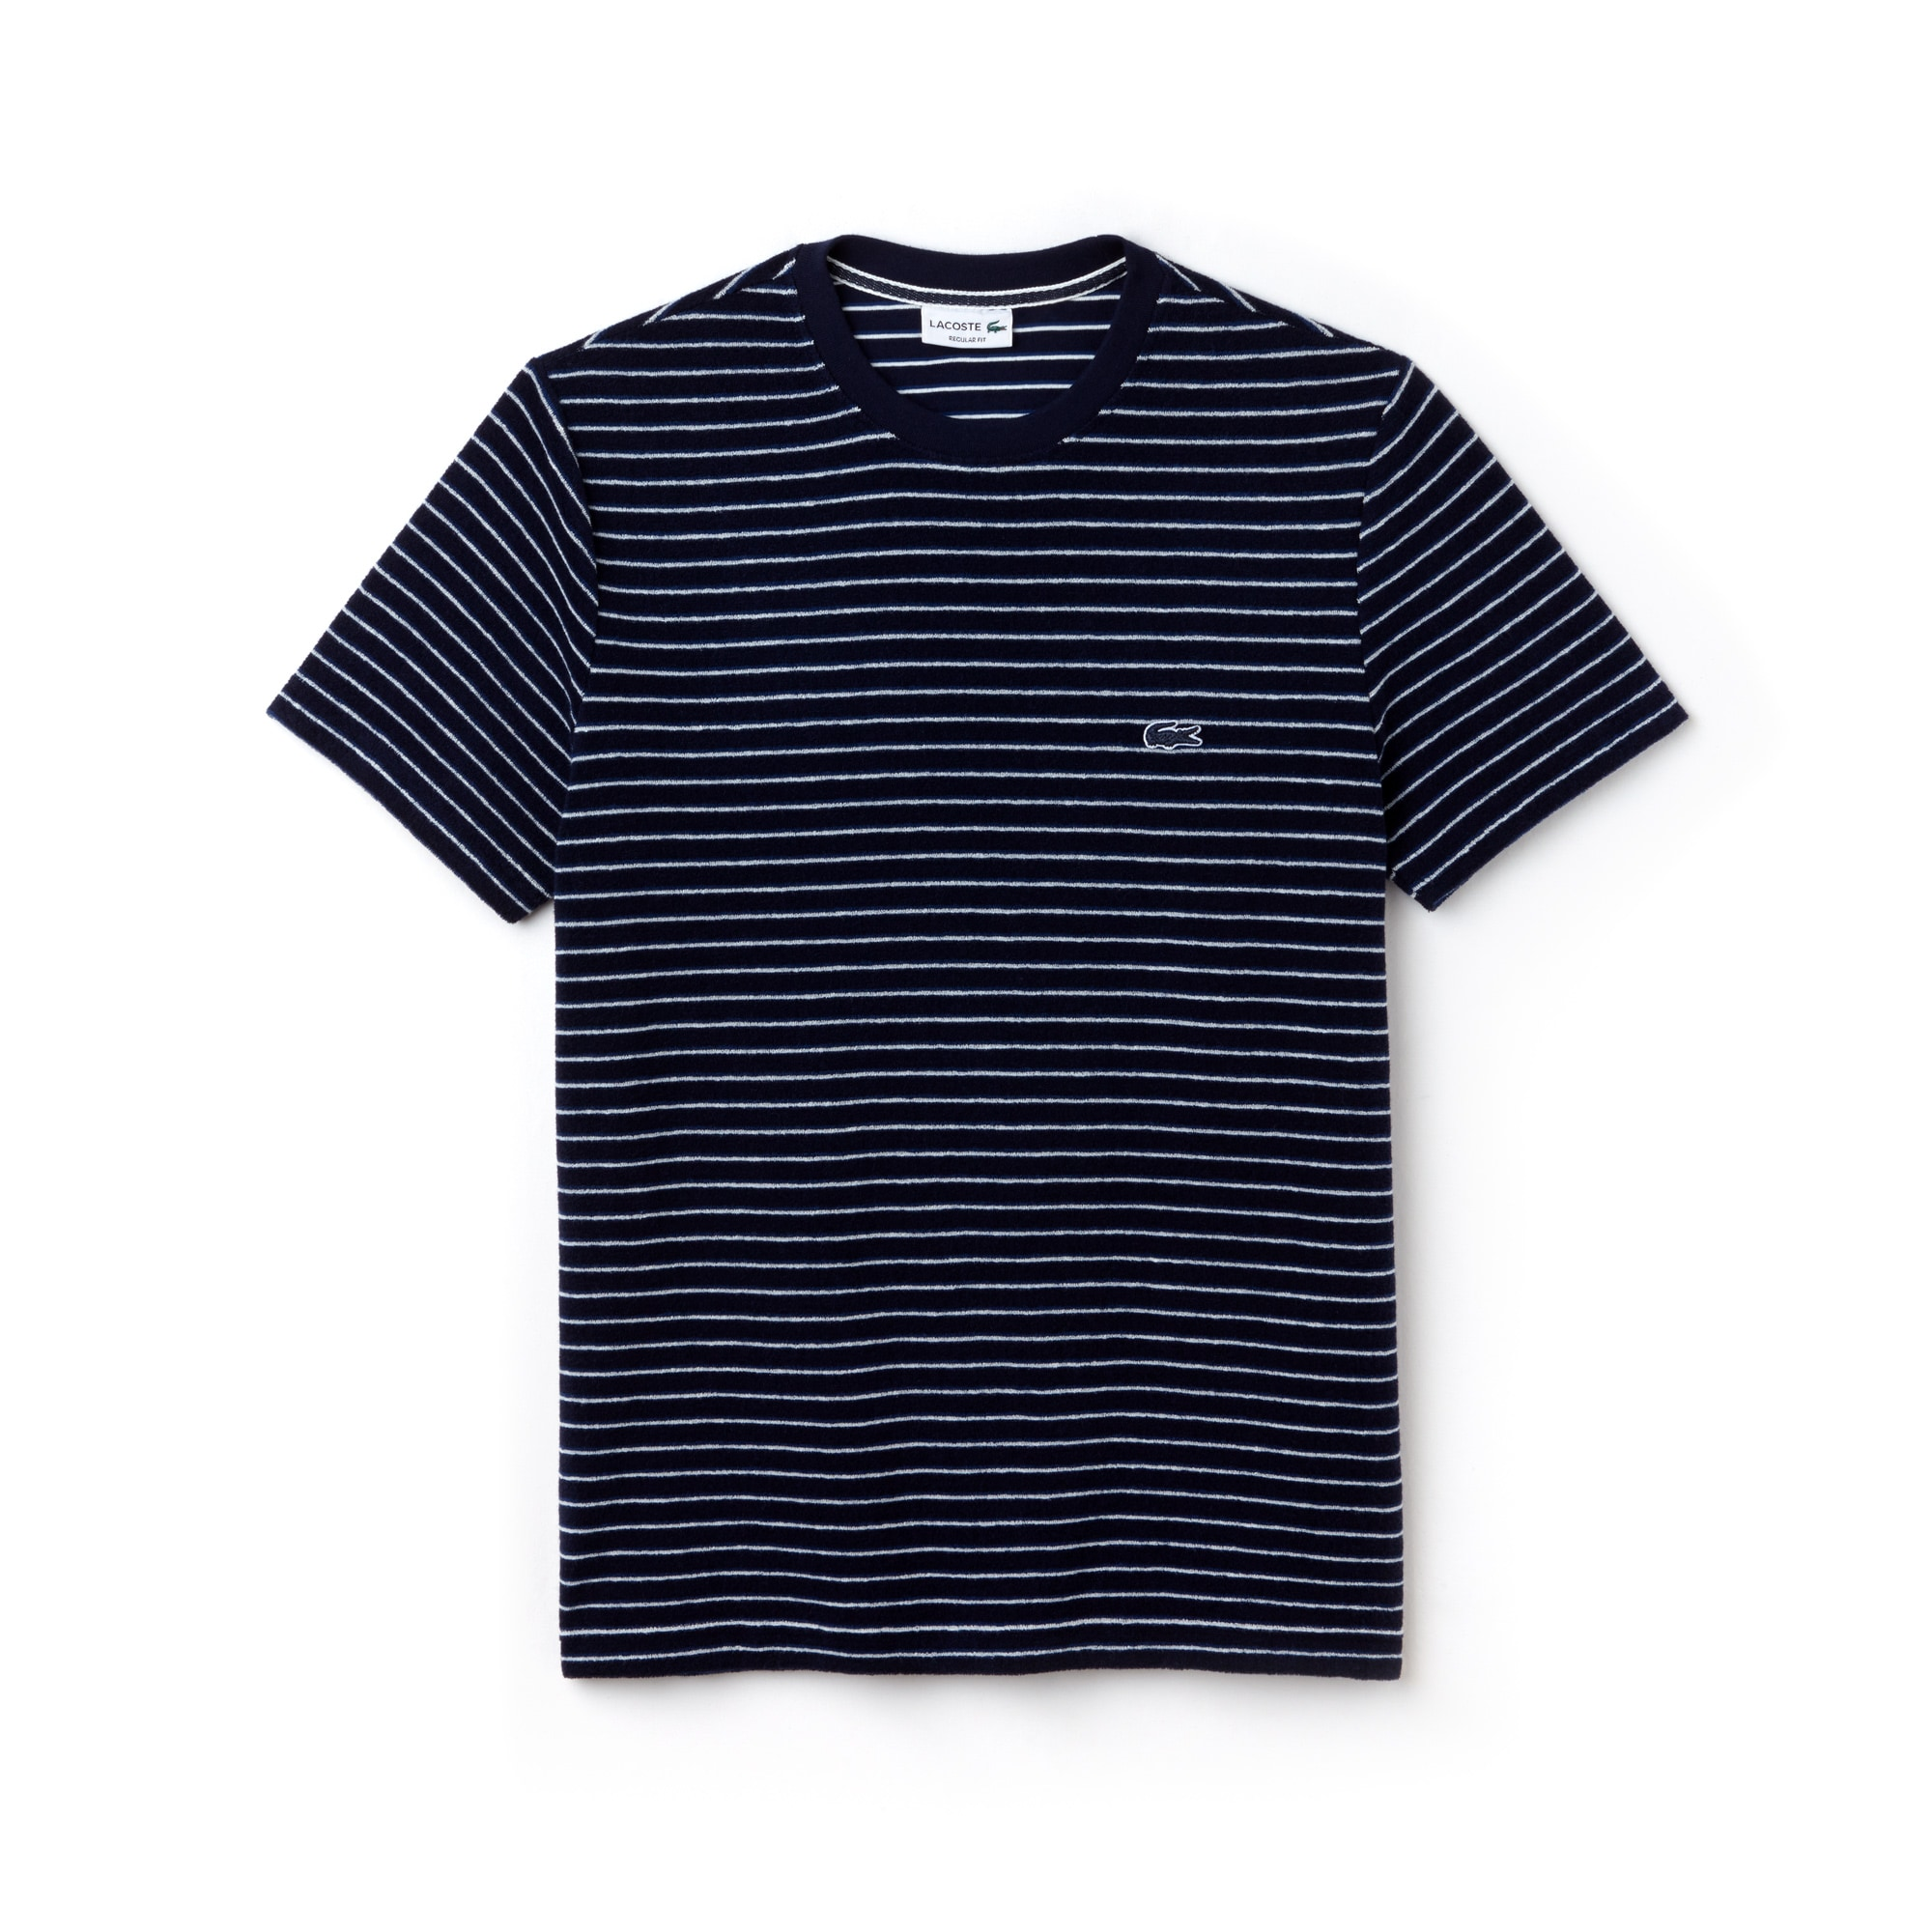 Men's Contrasting Crew Neck Striped Cotton Terrycloth T-Shirt